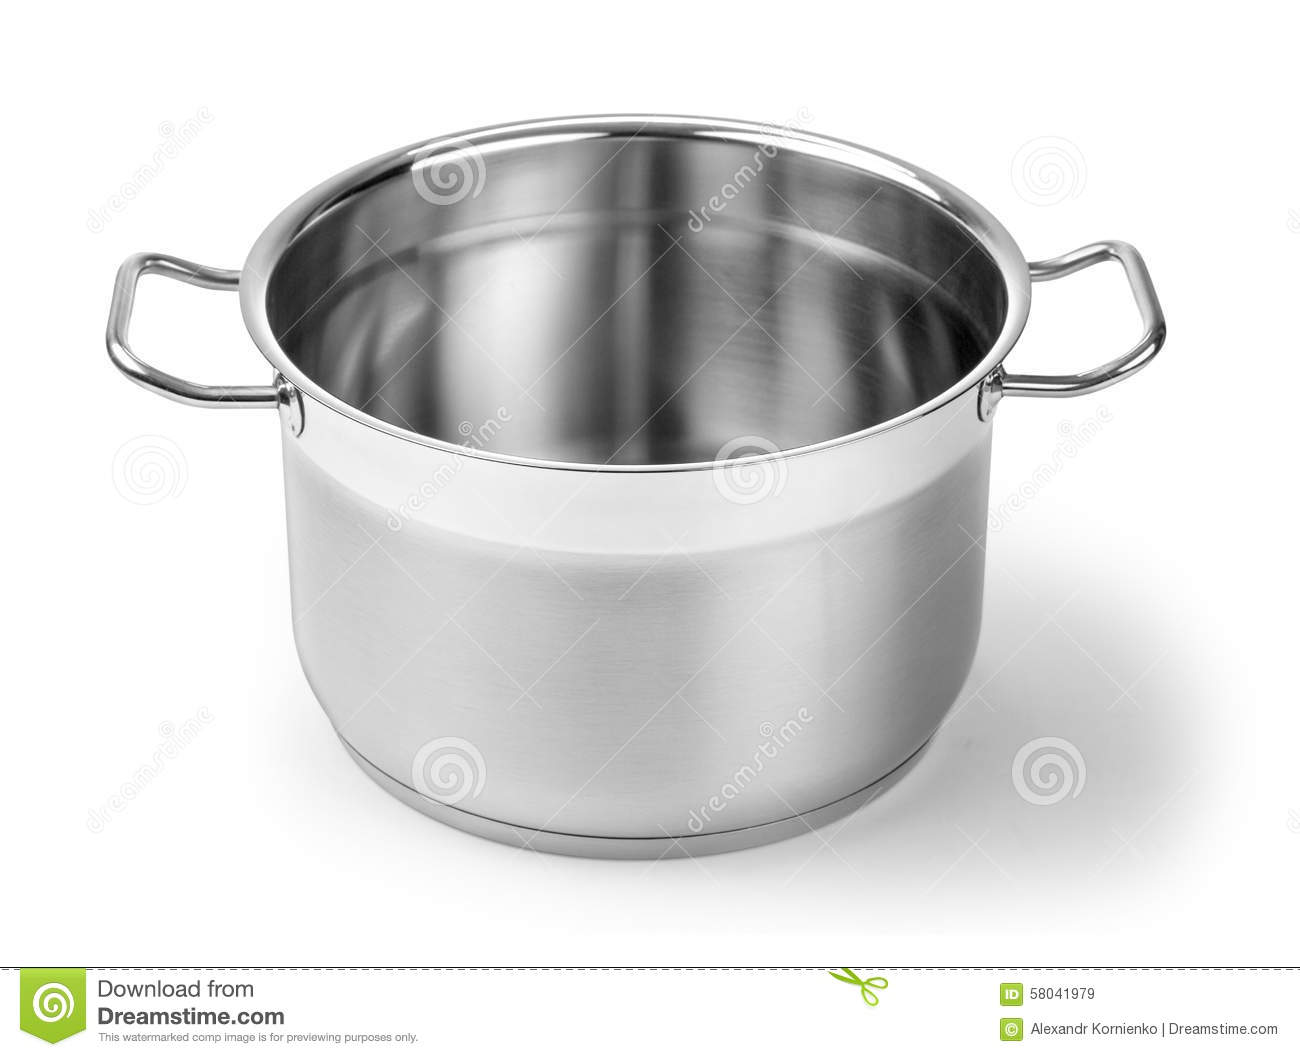 Big W Stock Pot Stainless Steel Pot Stock Image Image Of Kitchenware 58041979